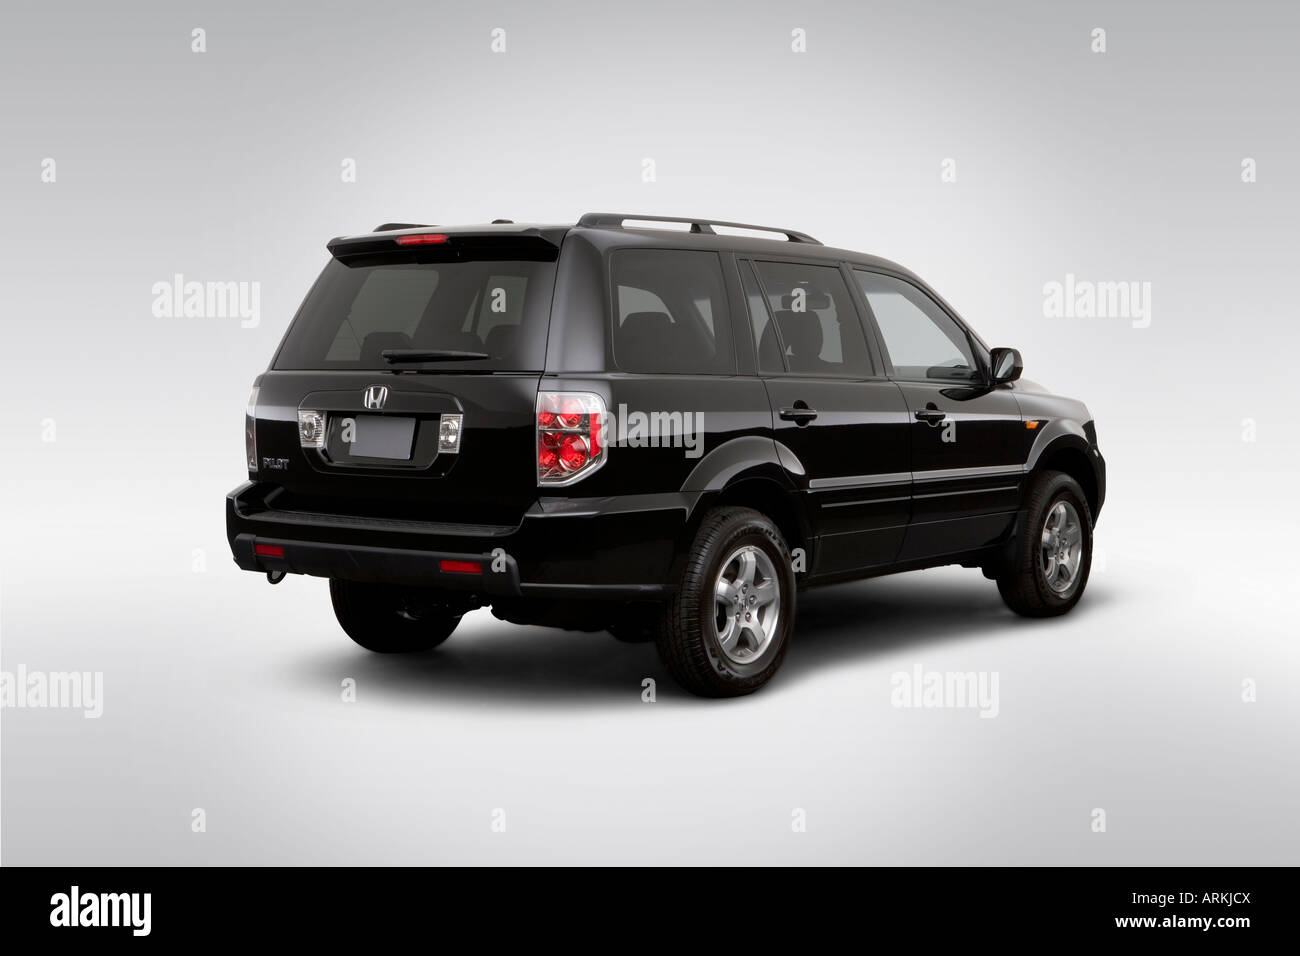 2008 honda pilot ex l in black rear angle view stock for Black honda pilot